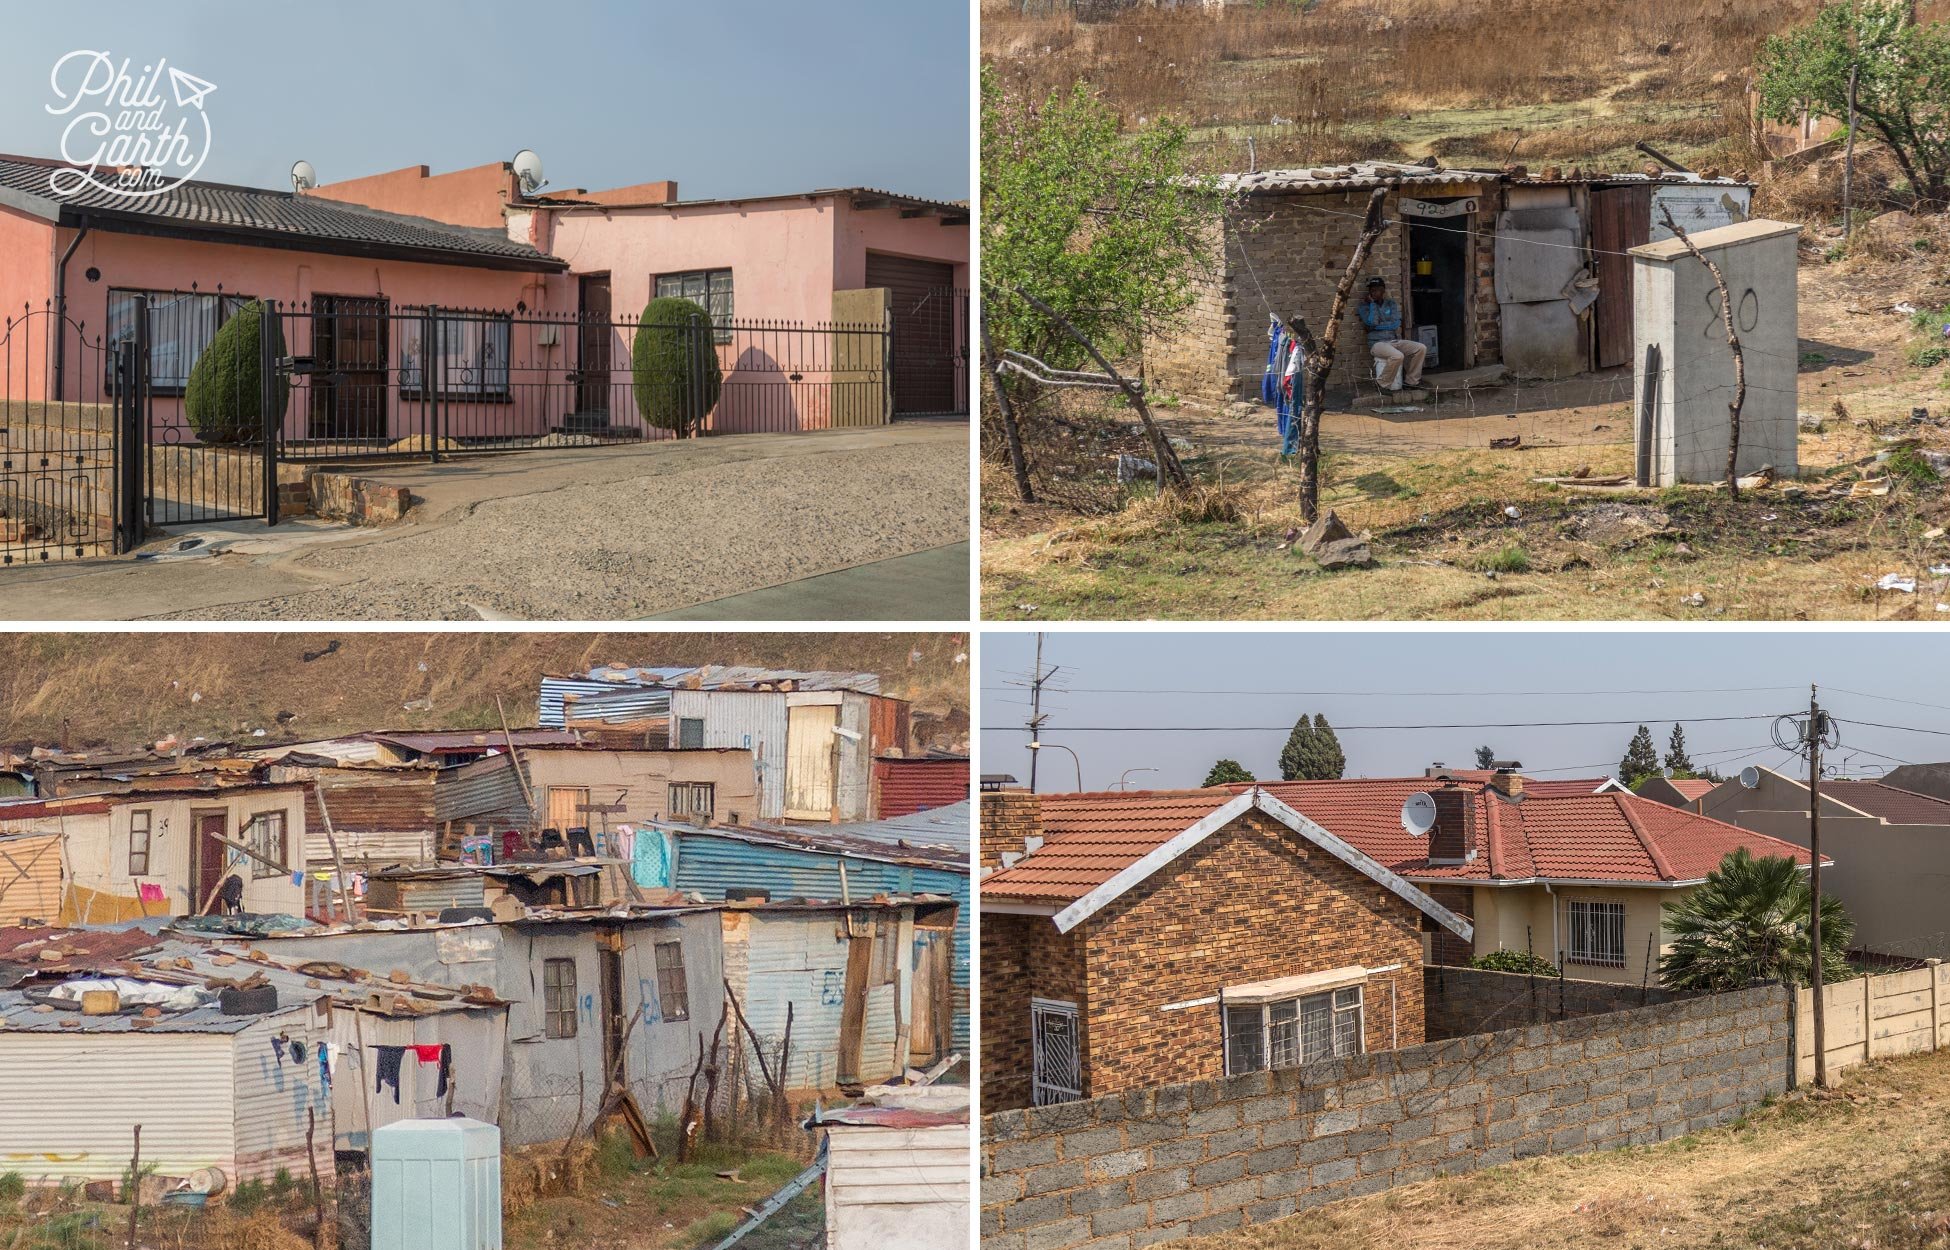 The housing division in Soweto